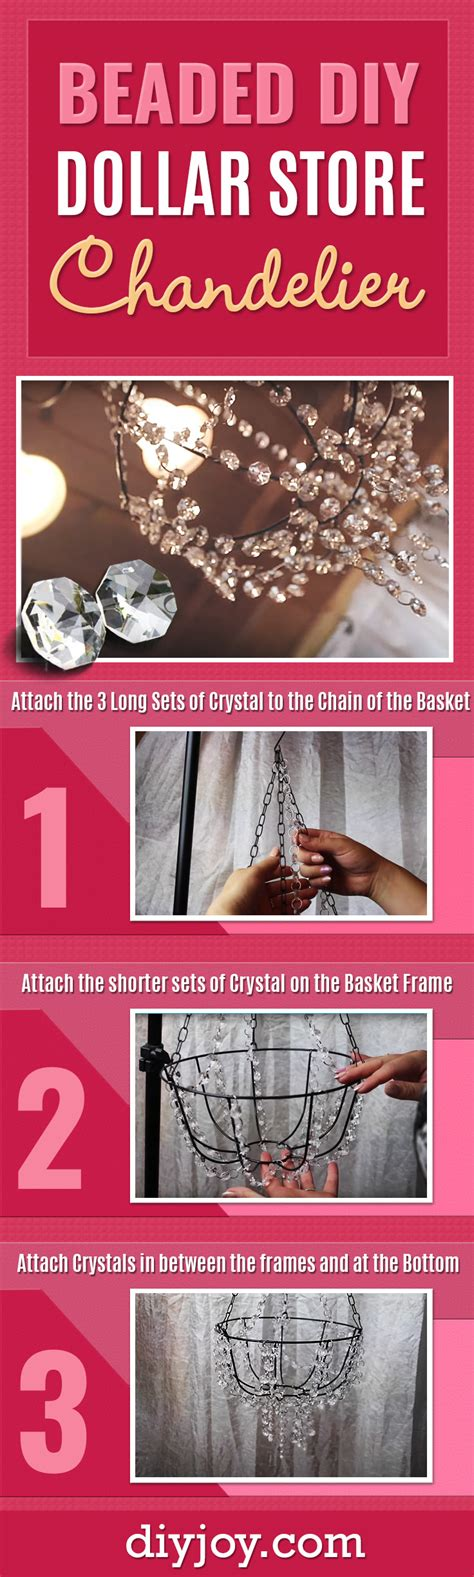 Inexpensive Home Decor Websites Amazingly Inexpensive Beaded Chandelier That Is Sure To